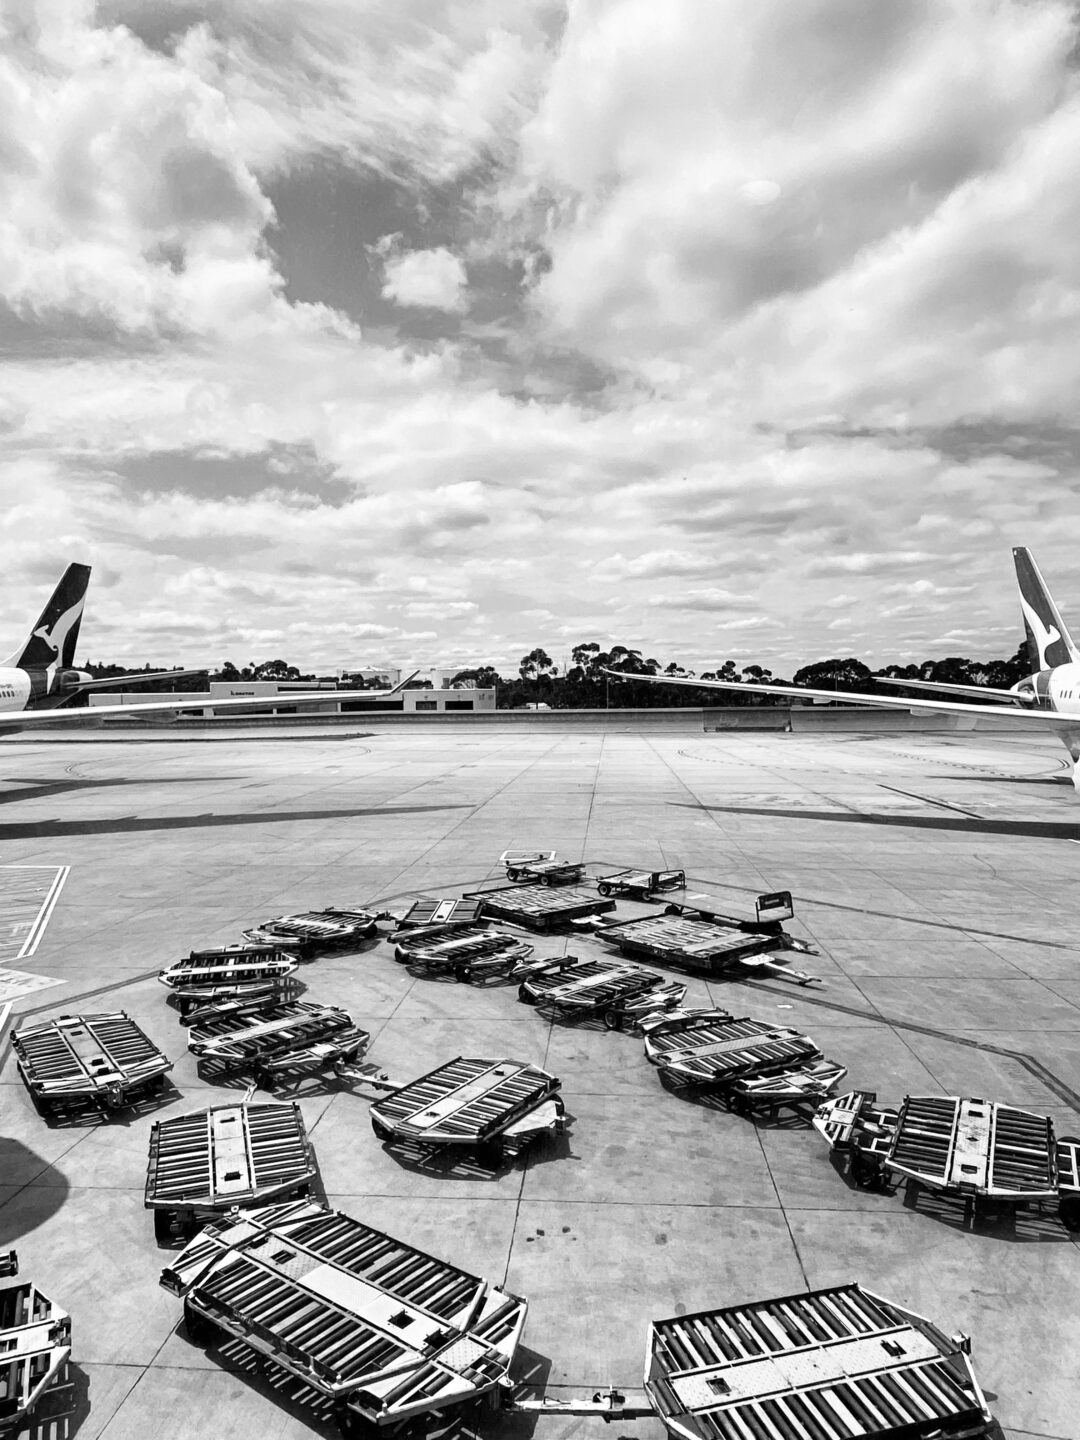 black and white image of empty luggage trolleys and the back of plane wings with kangaroos visible (the QANTAS logo)